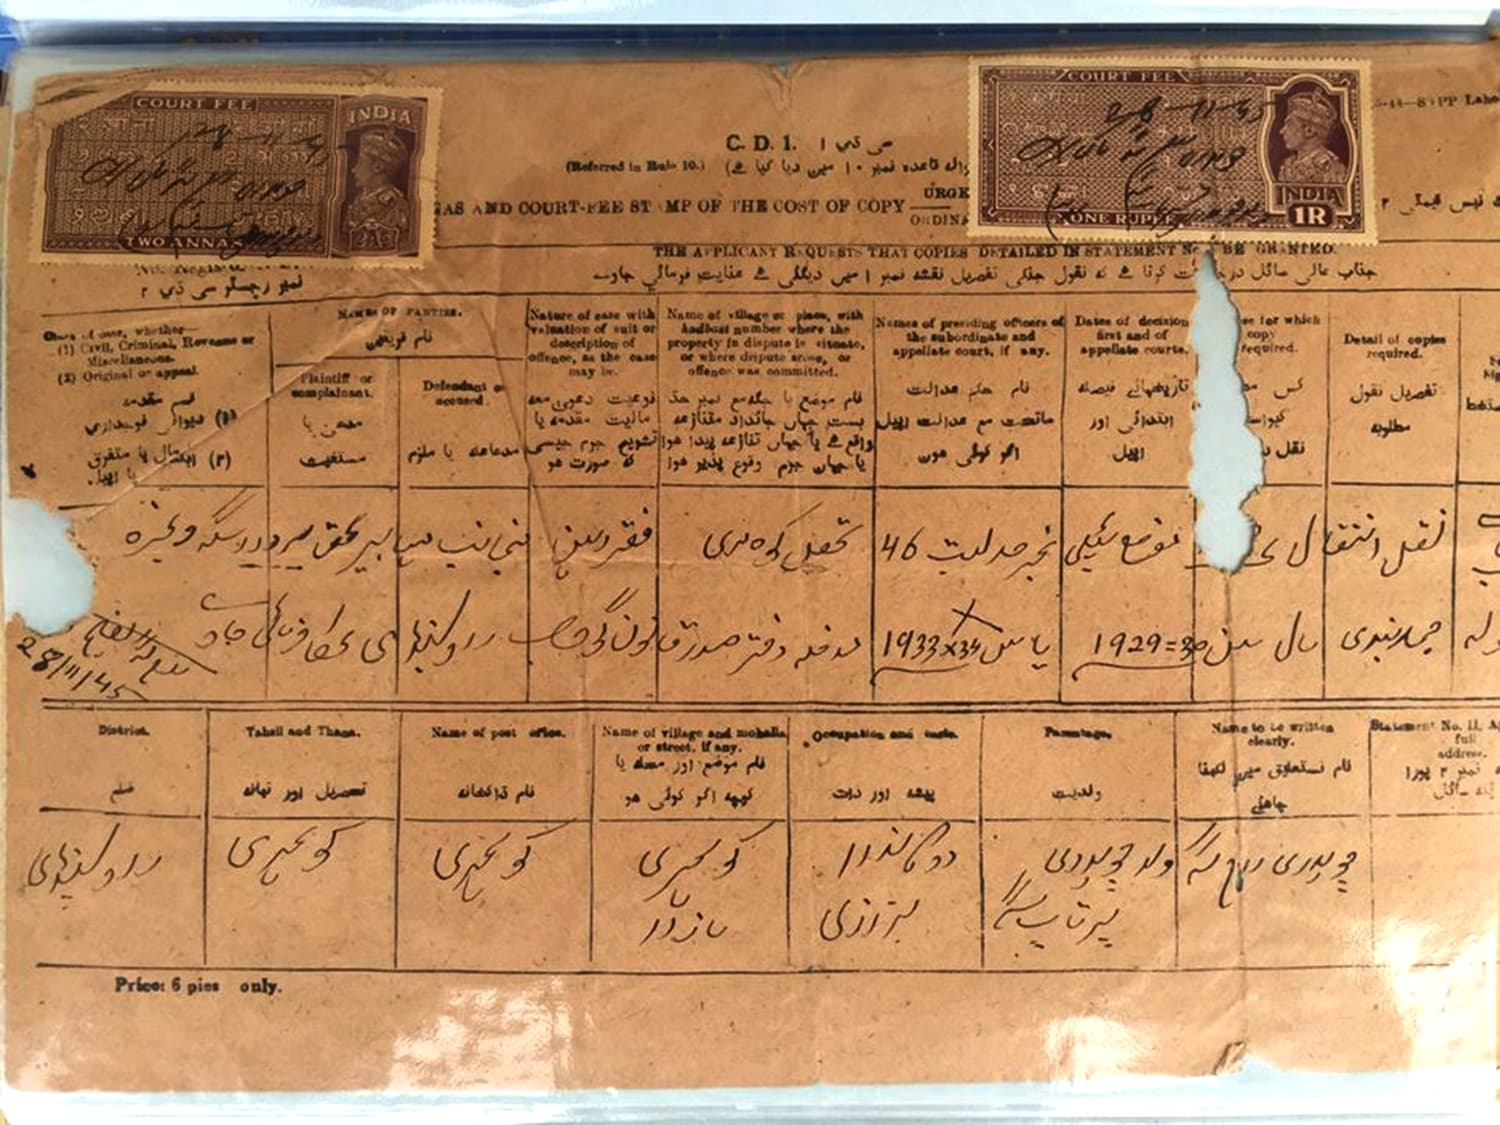 The original land papers (registry) of the Singh family house in Rawalpindi.